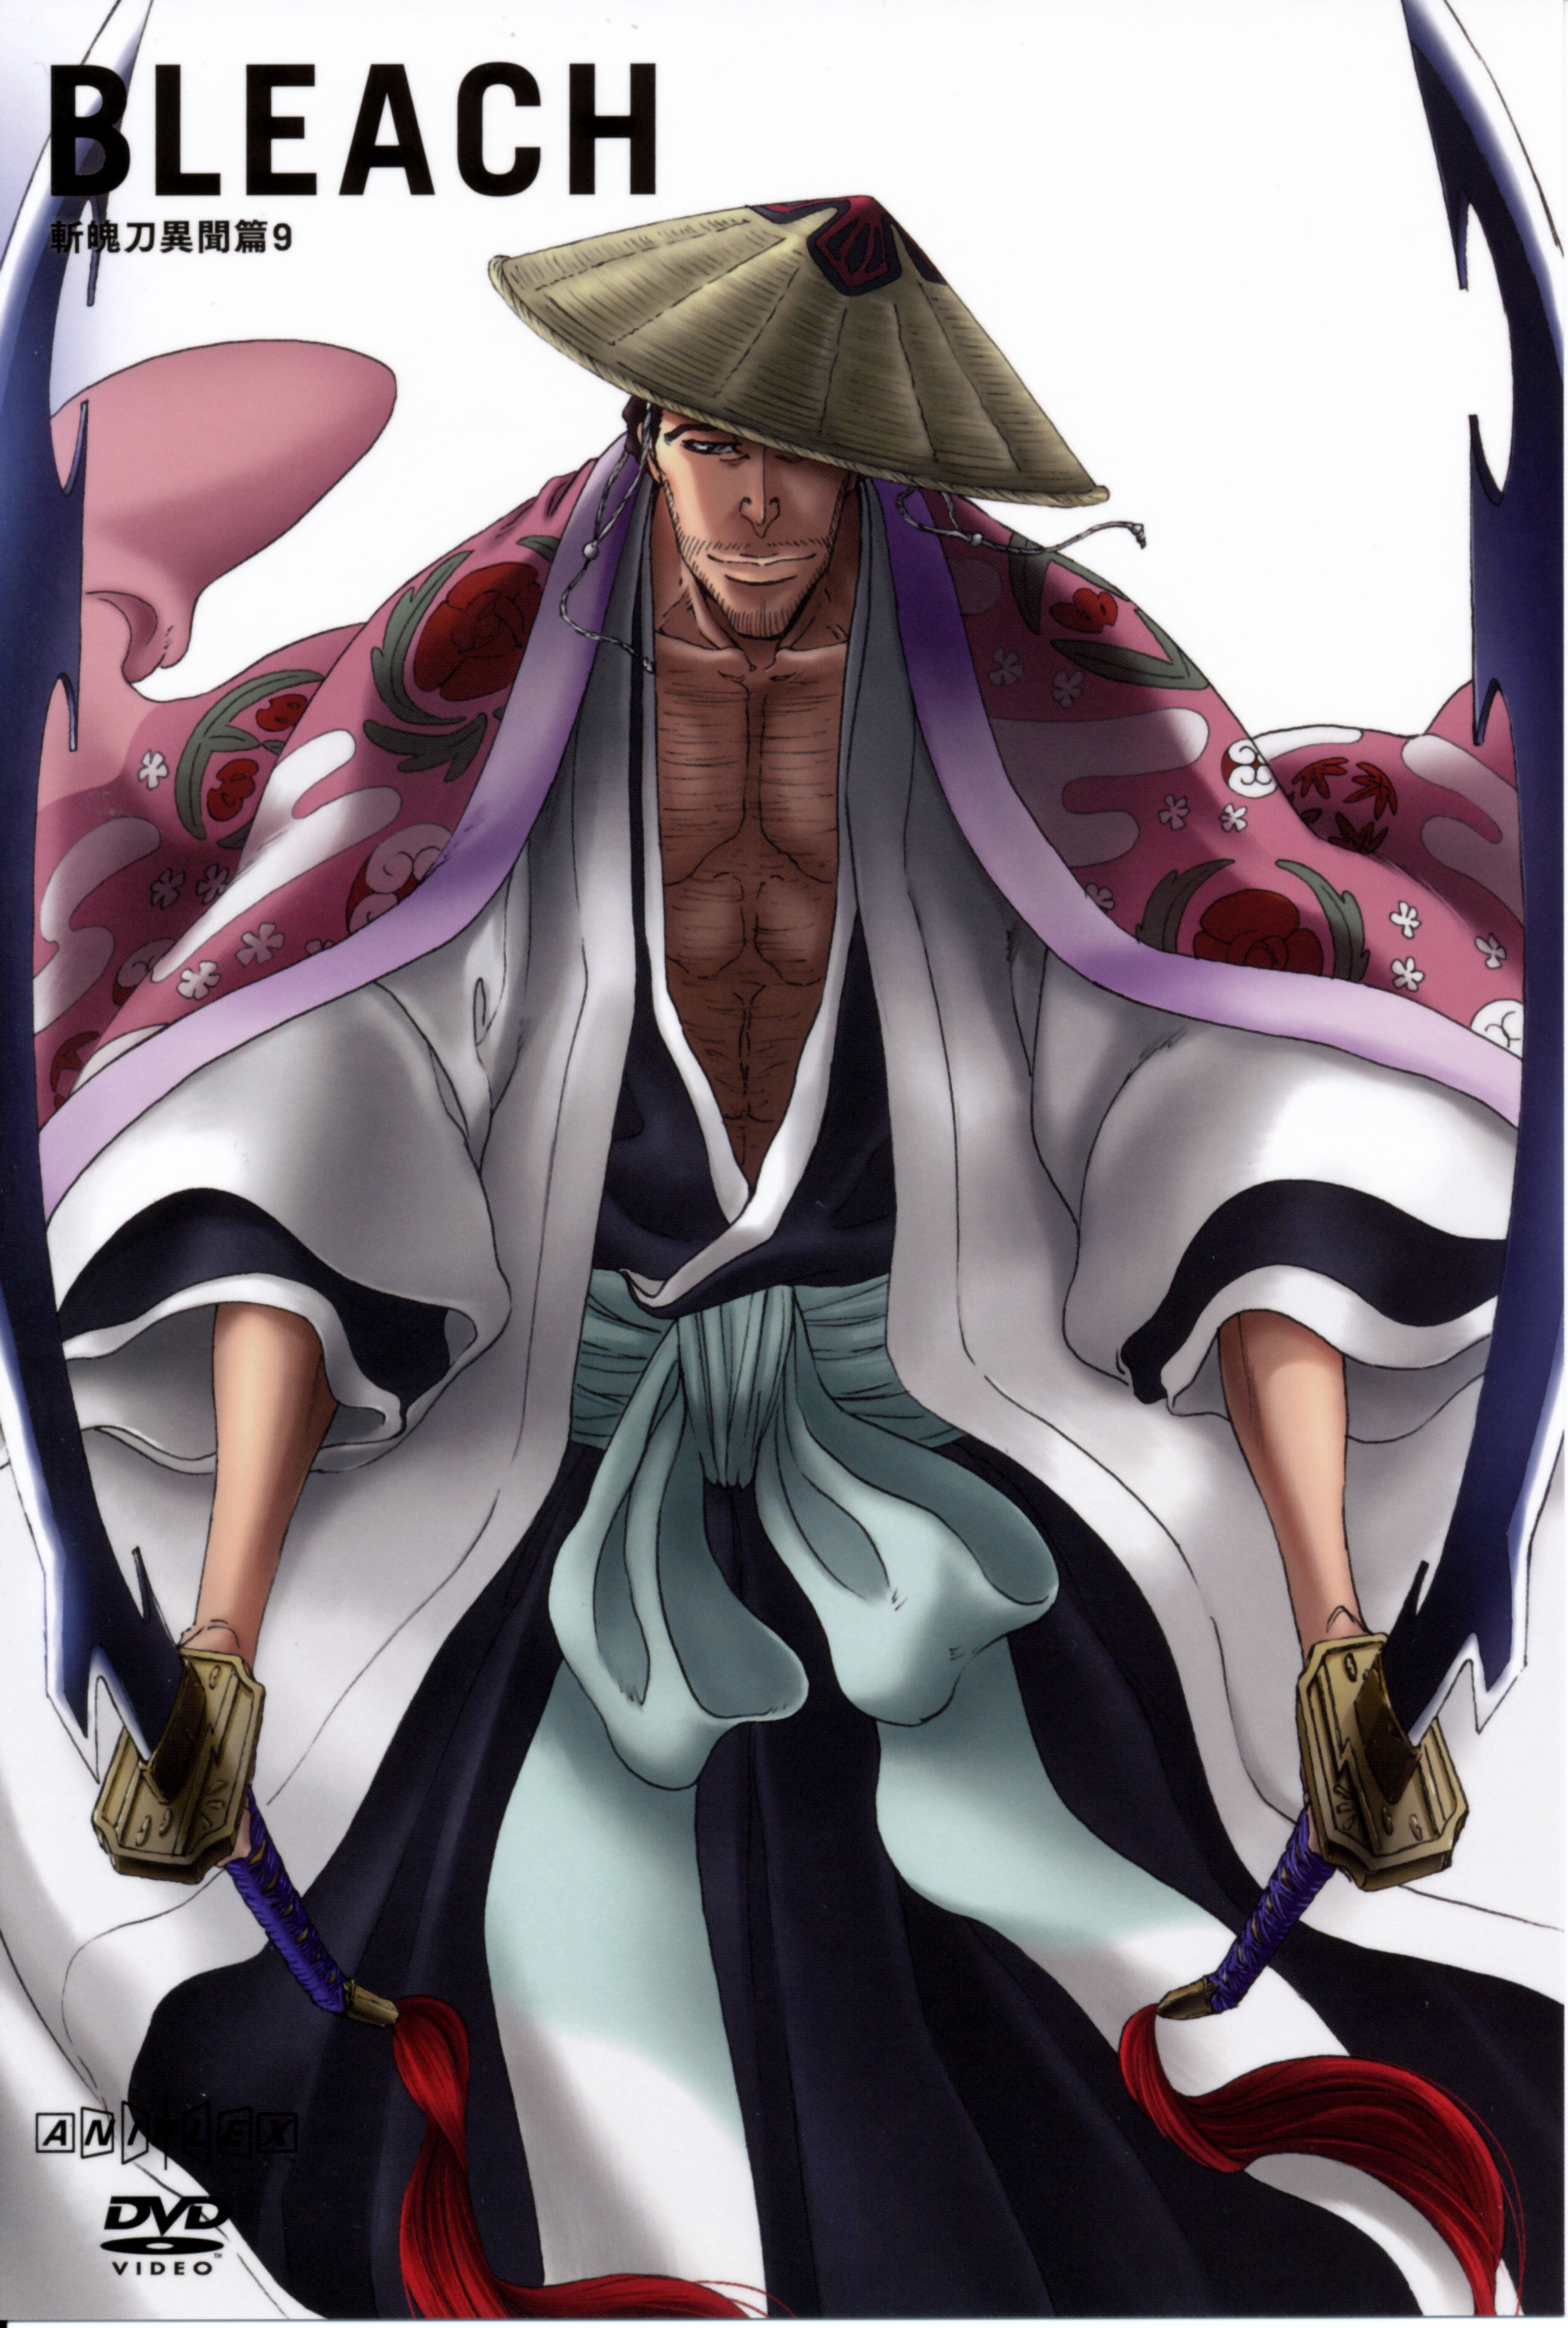 Kyouraku Shunsui - BLEACH - Mobile Wallpaper #539389 ...